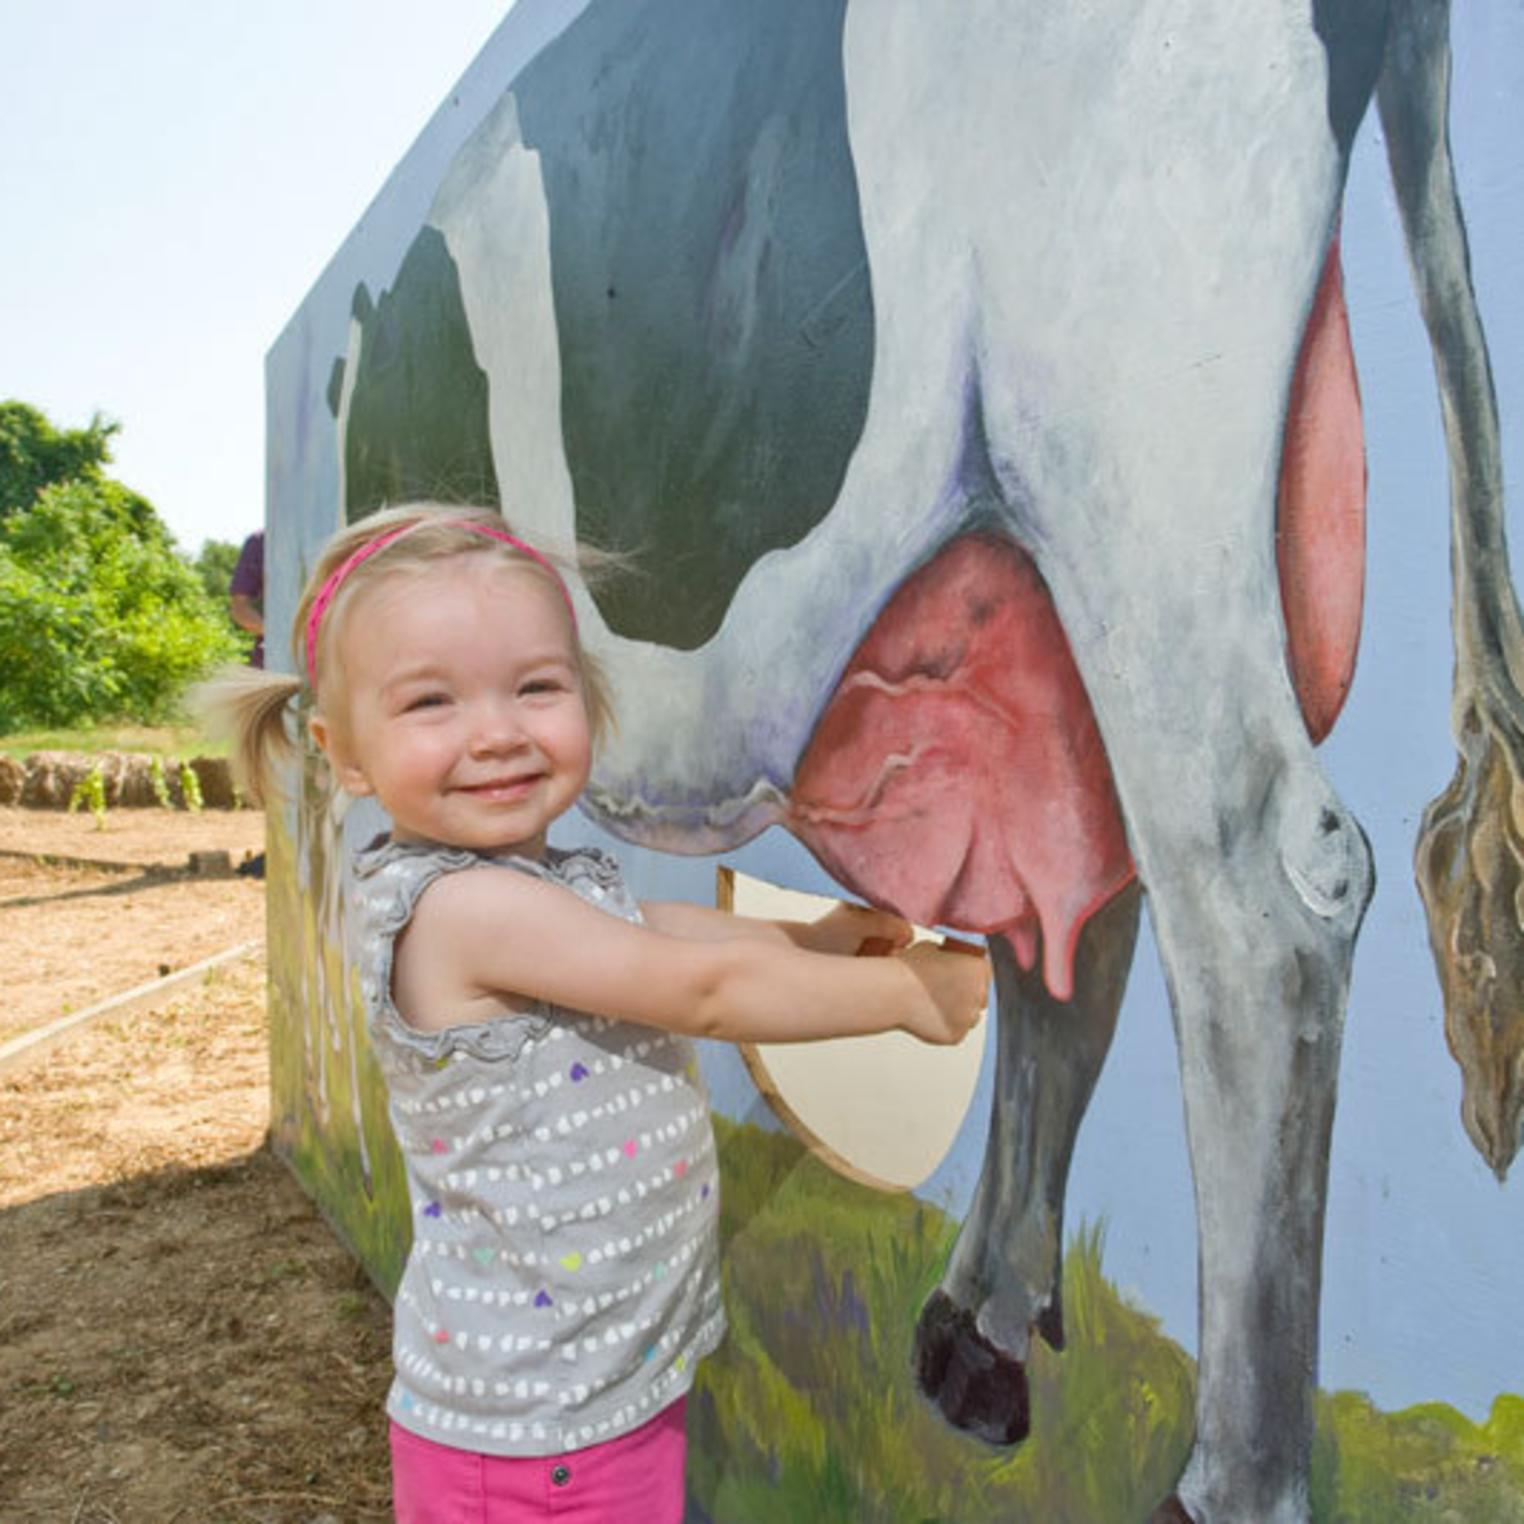 Milking the Cow at Paulus Farm Market